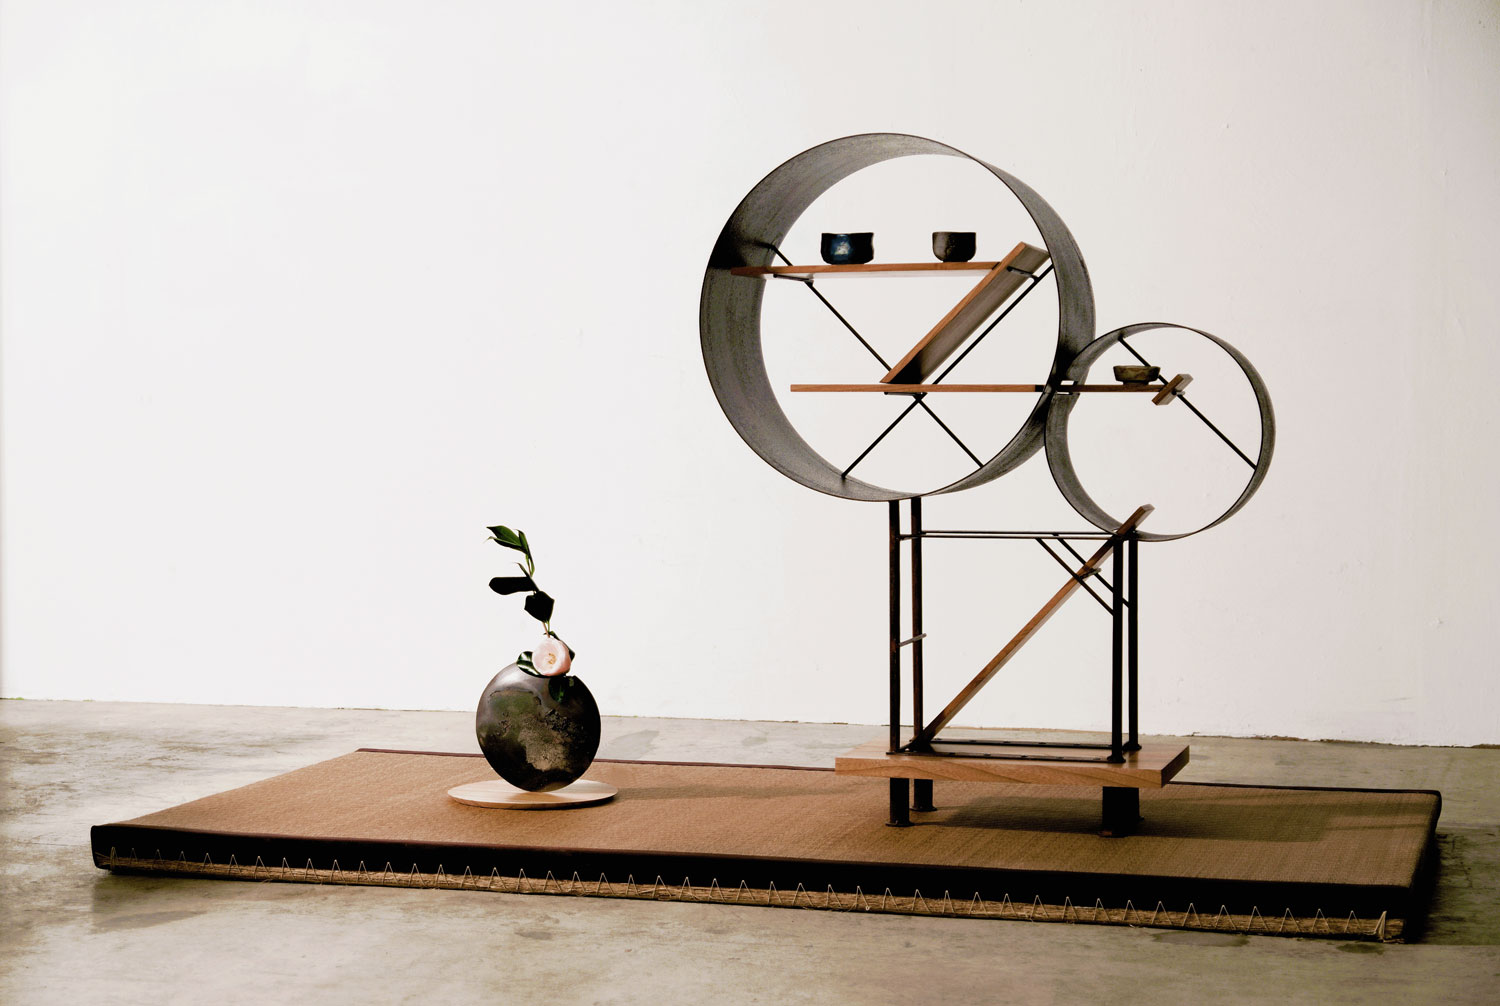 Shelf & Vase by Hamajima Takuya for 19 Greek Street | Yellowtrace